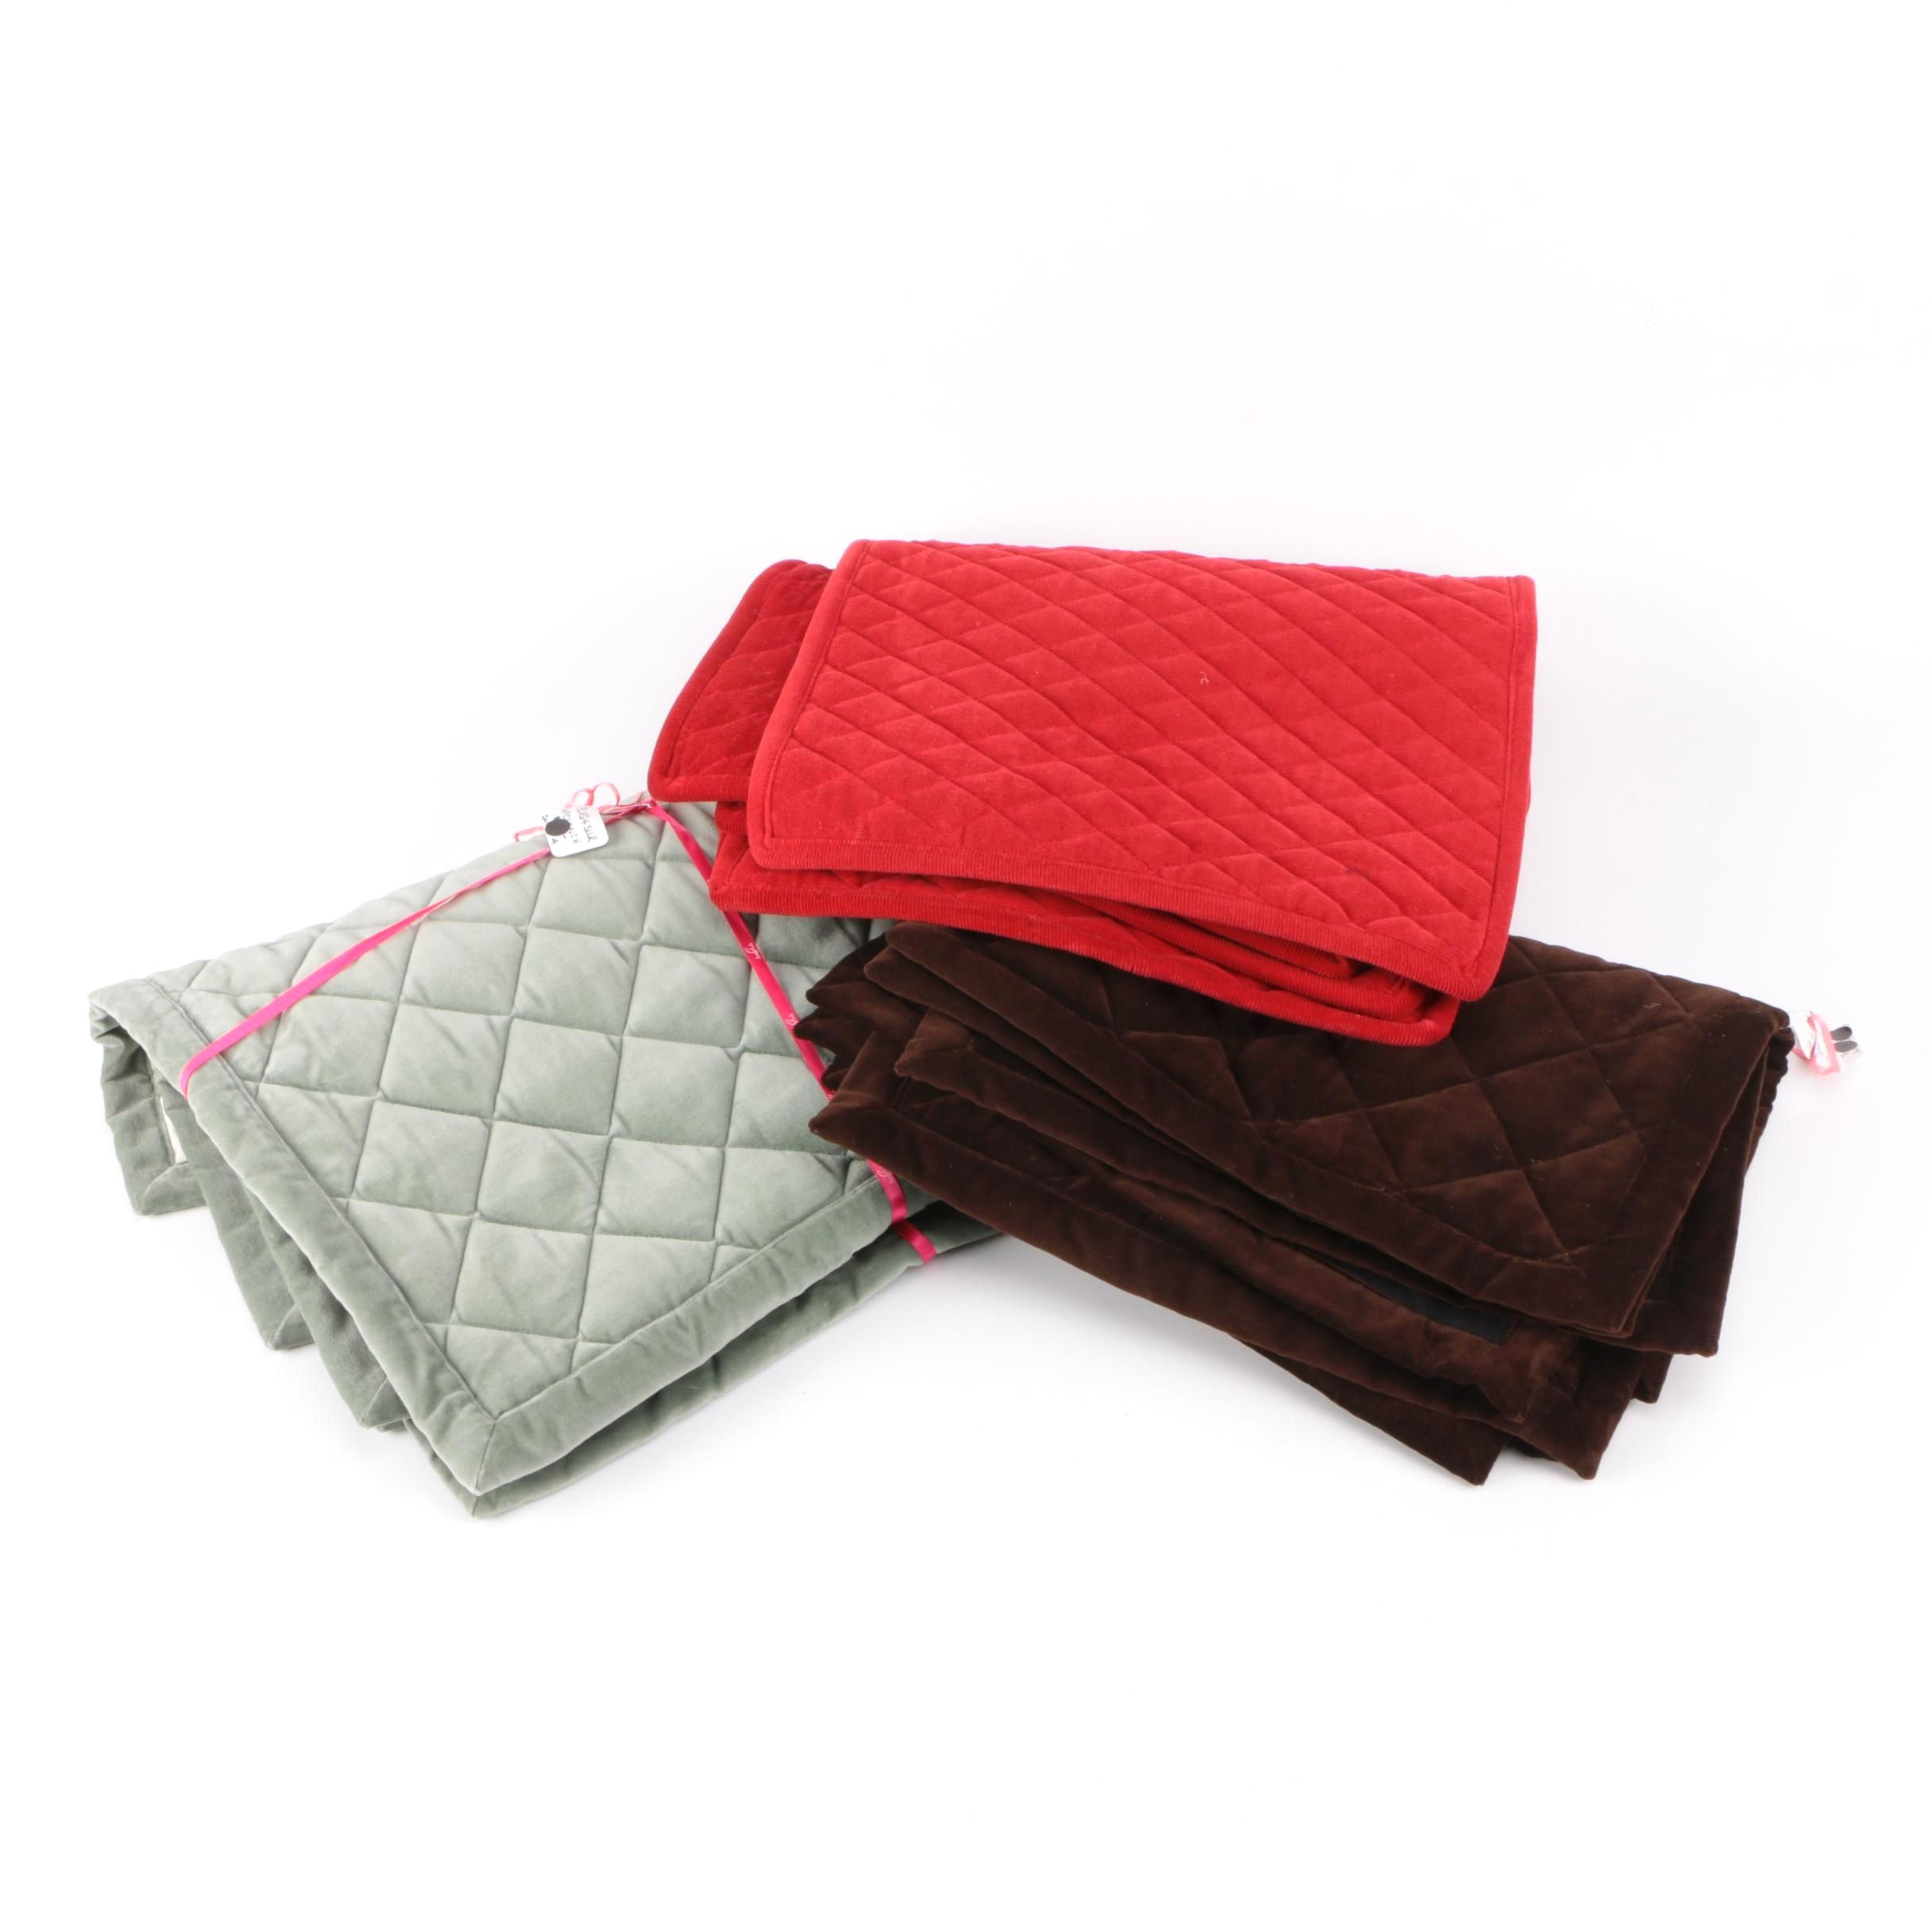 Quilted Velvet and Corduroy Placemats by Juliska and Ann Gish